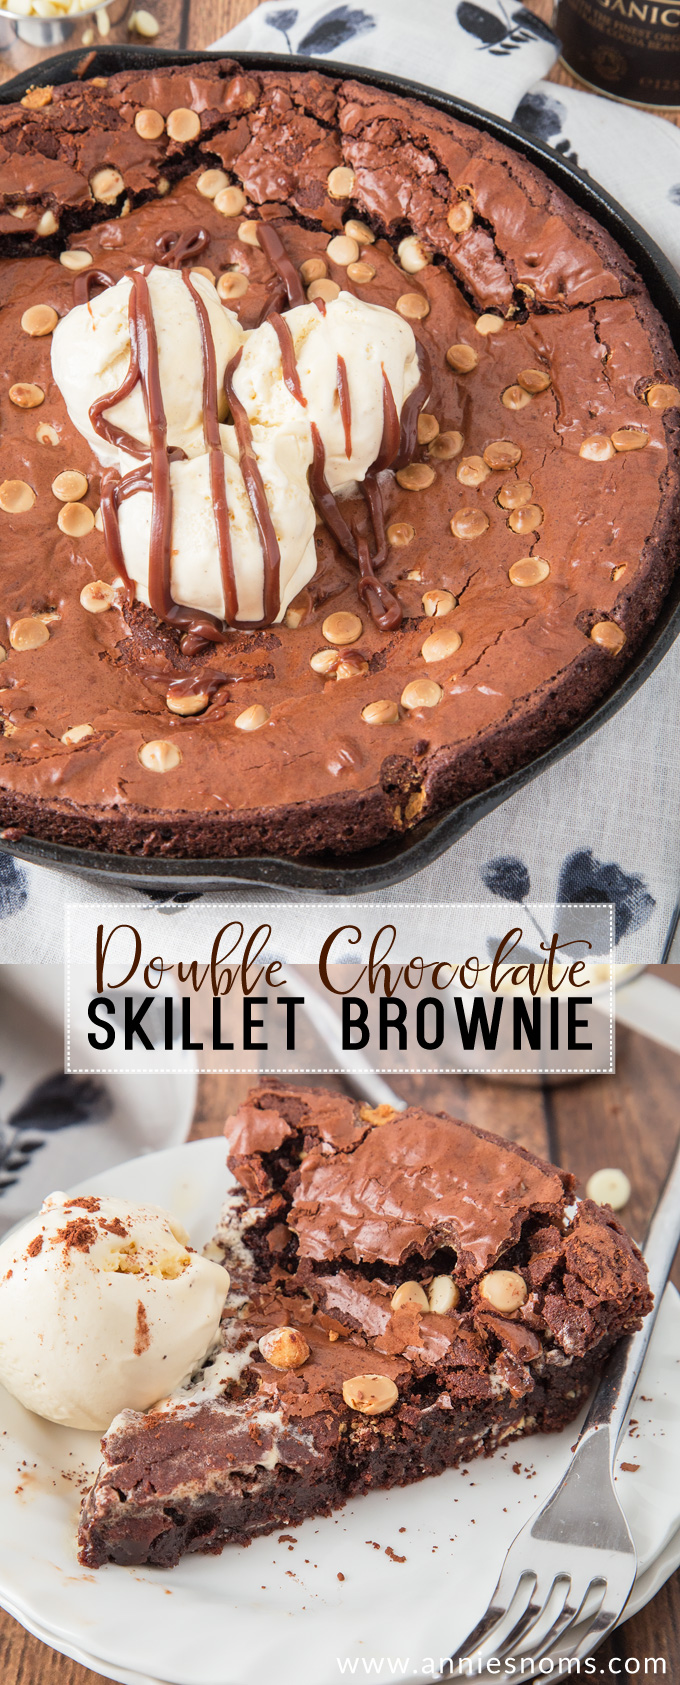 This chewy and decadent Double Chocolate Skillet Brownie is the stuff dreams are made of! Gooey, fudgy and packed with chocolate, it's heaven in every bite!